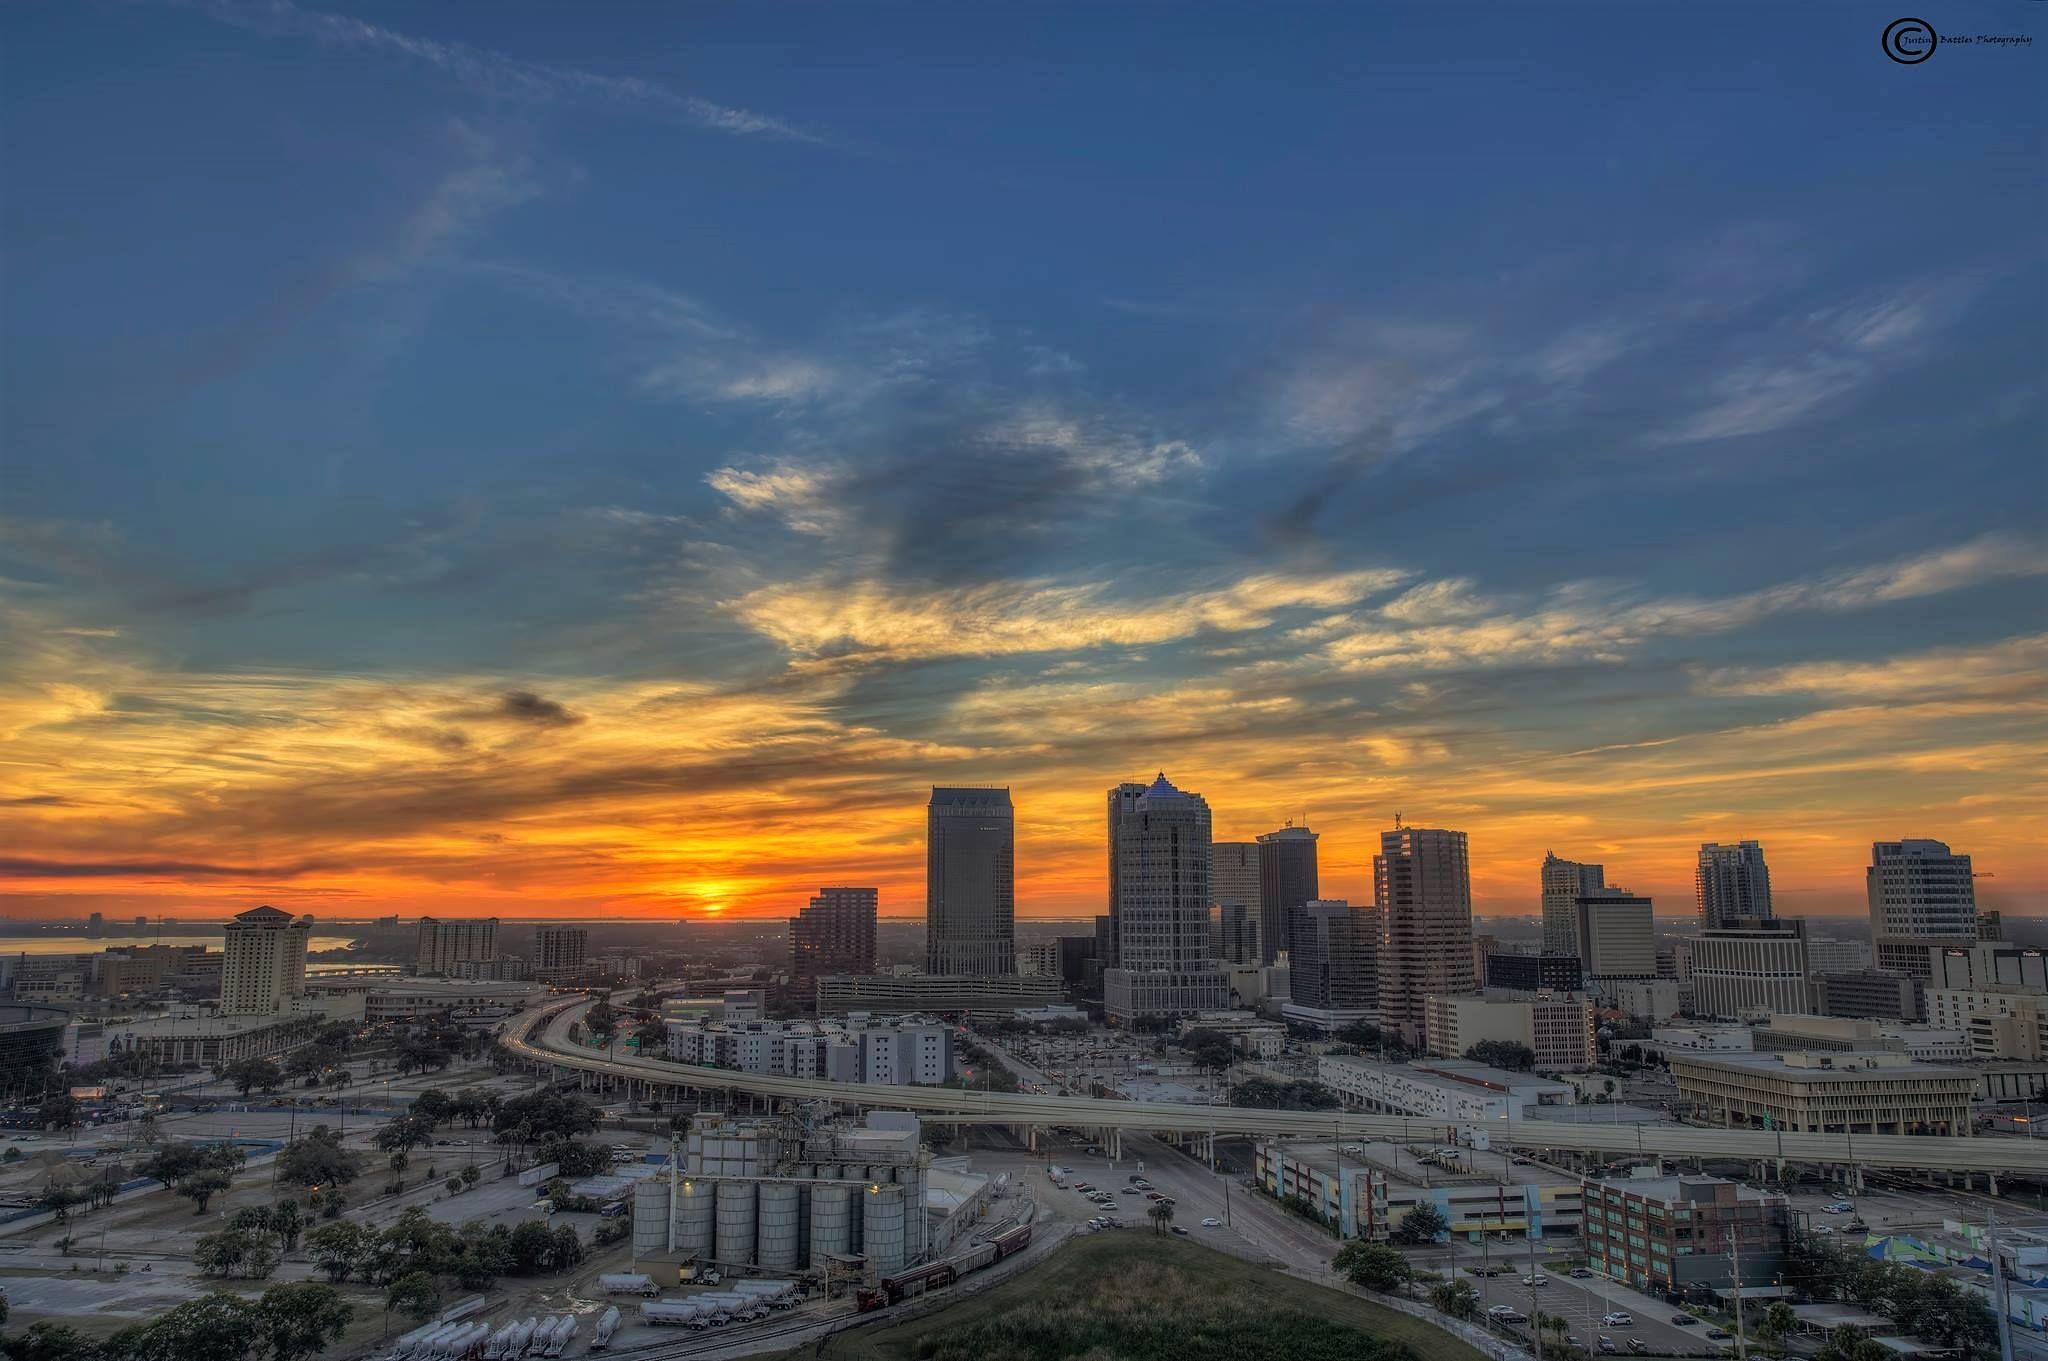 Sunset over Tampa, Florida March 9, 2017 | Favorite places ...